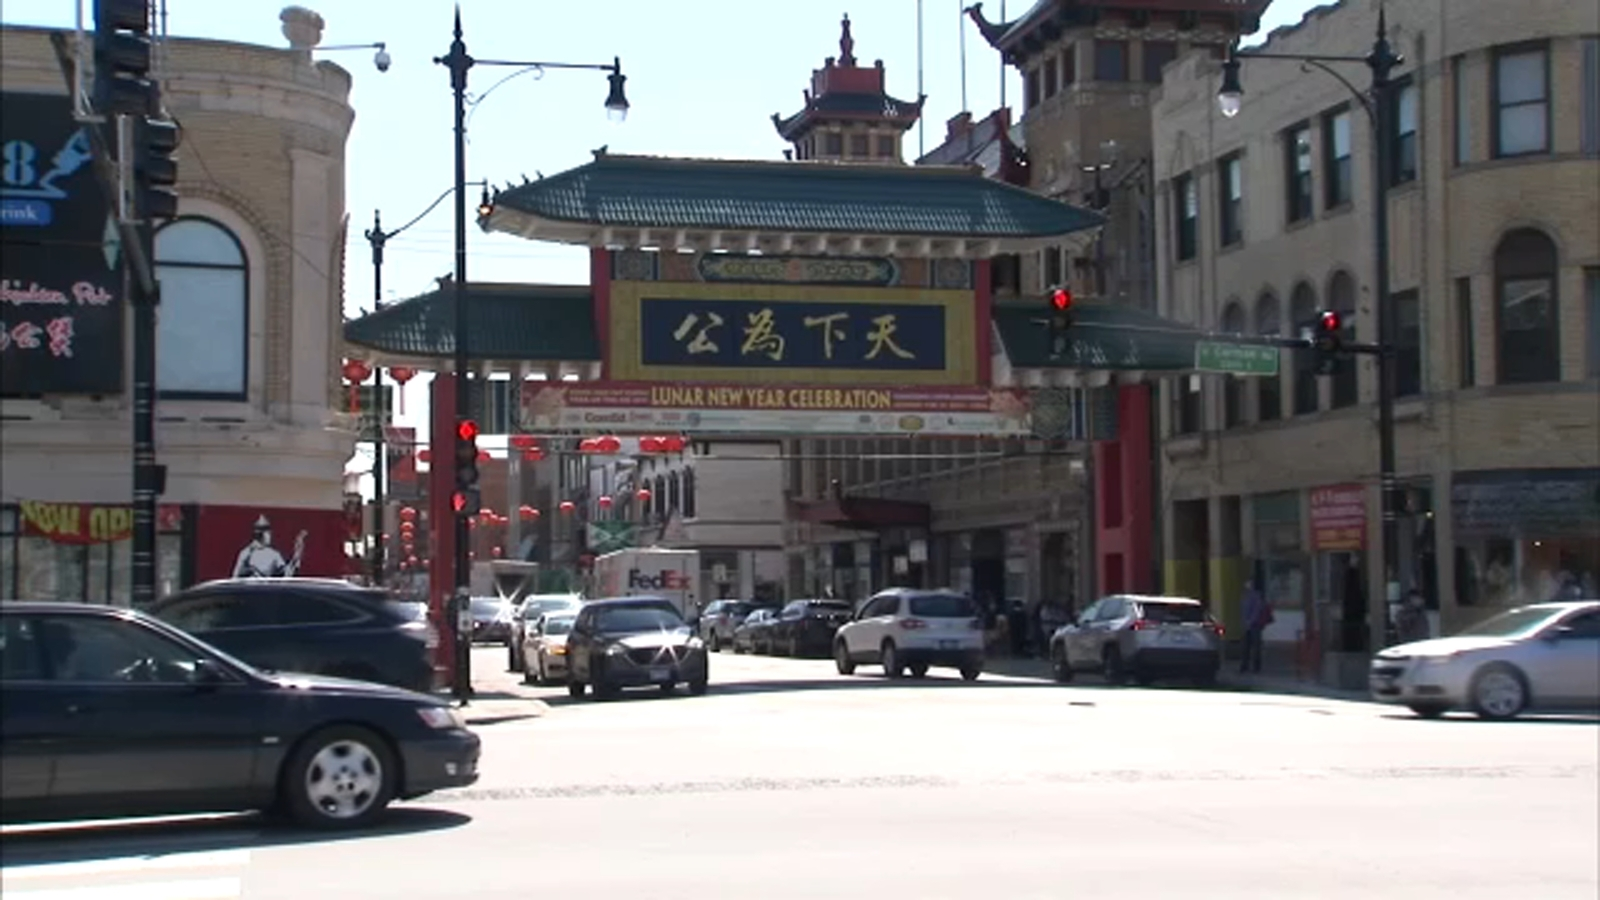 abc7chicago.com: Violent crimes against Asian American in Chicago on the rise, CPD says